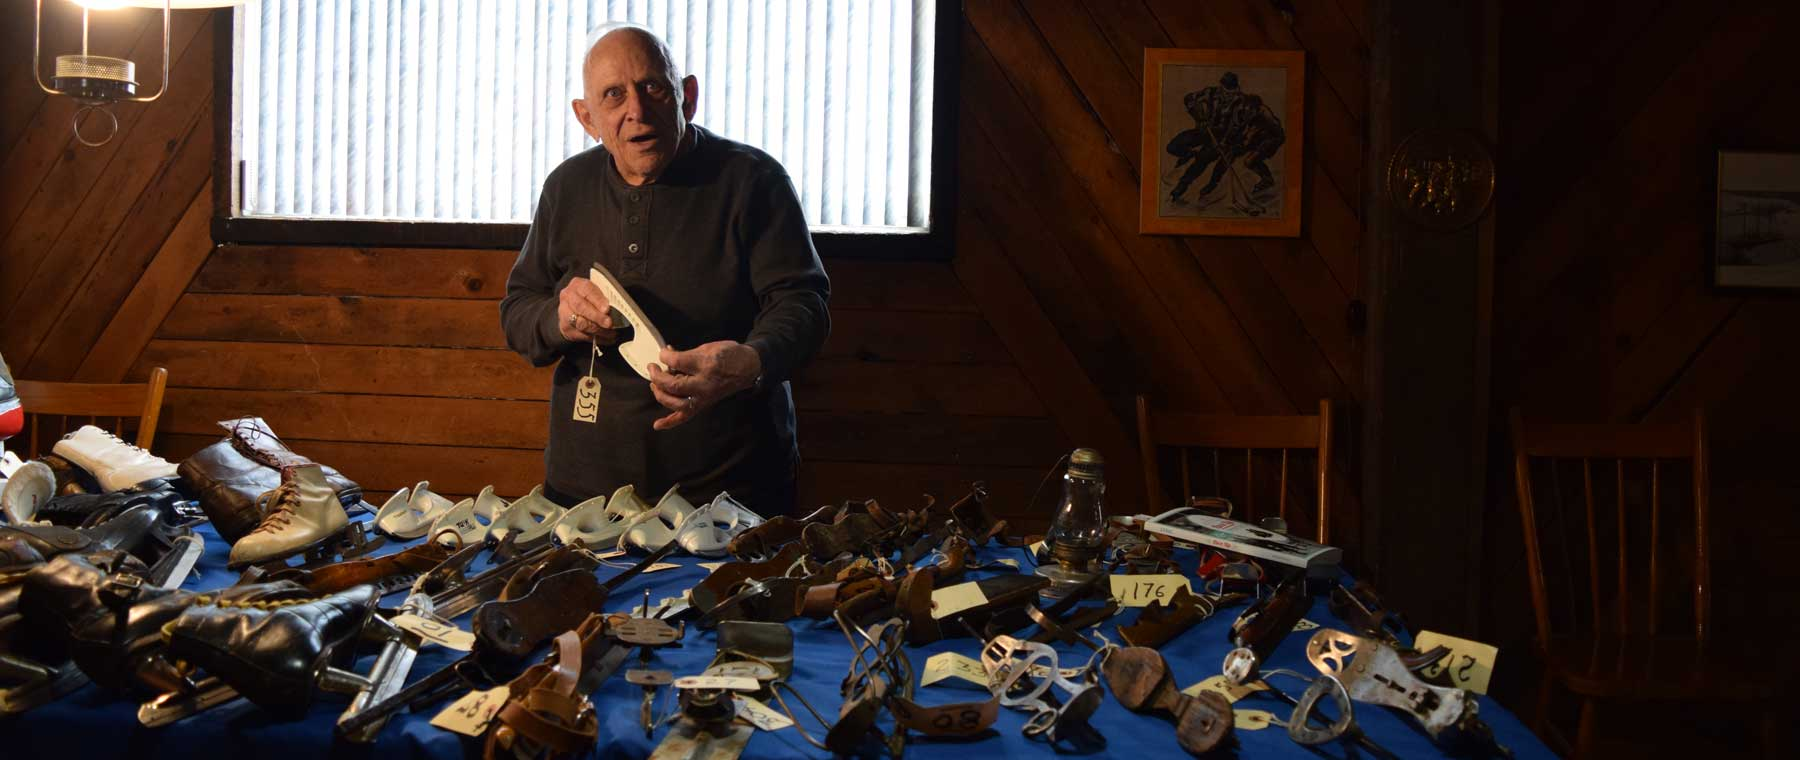 """They're not only buffalo bones, they're skates"" — Inside the fantastic collection of Jean-Marie Leduc"